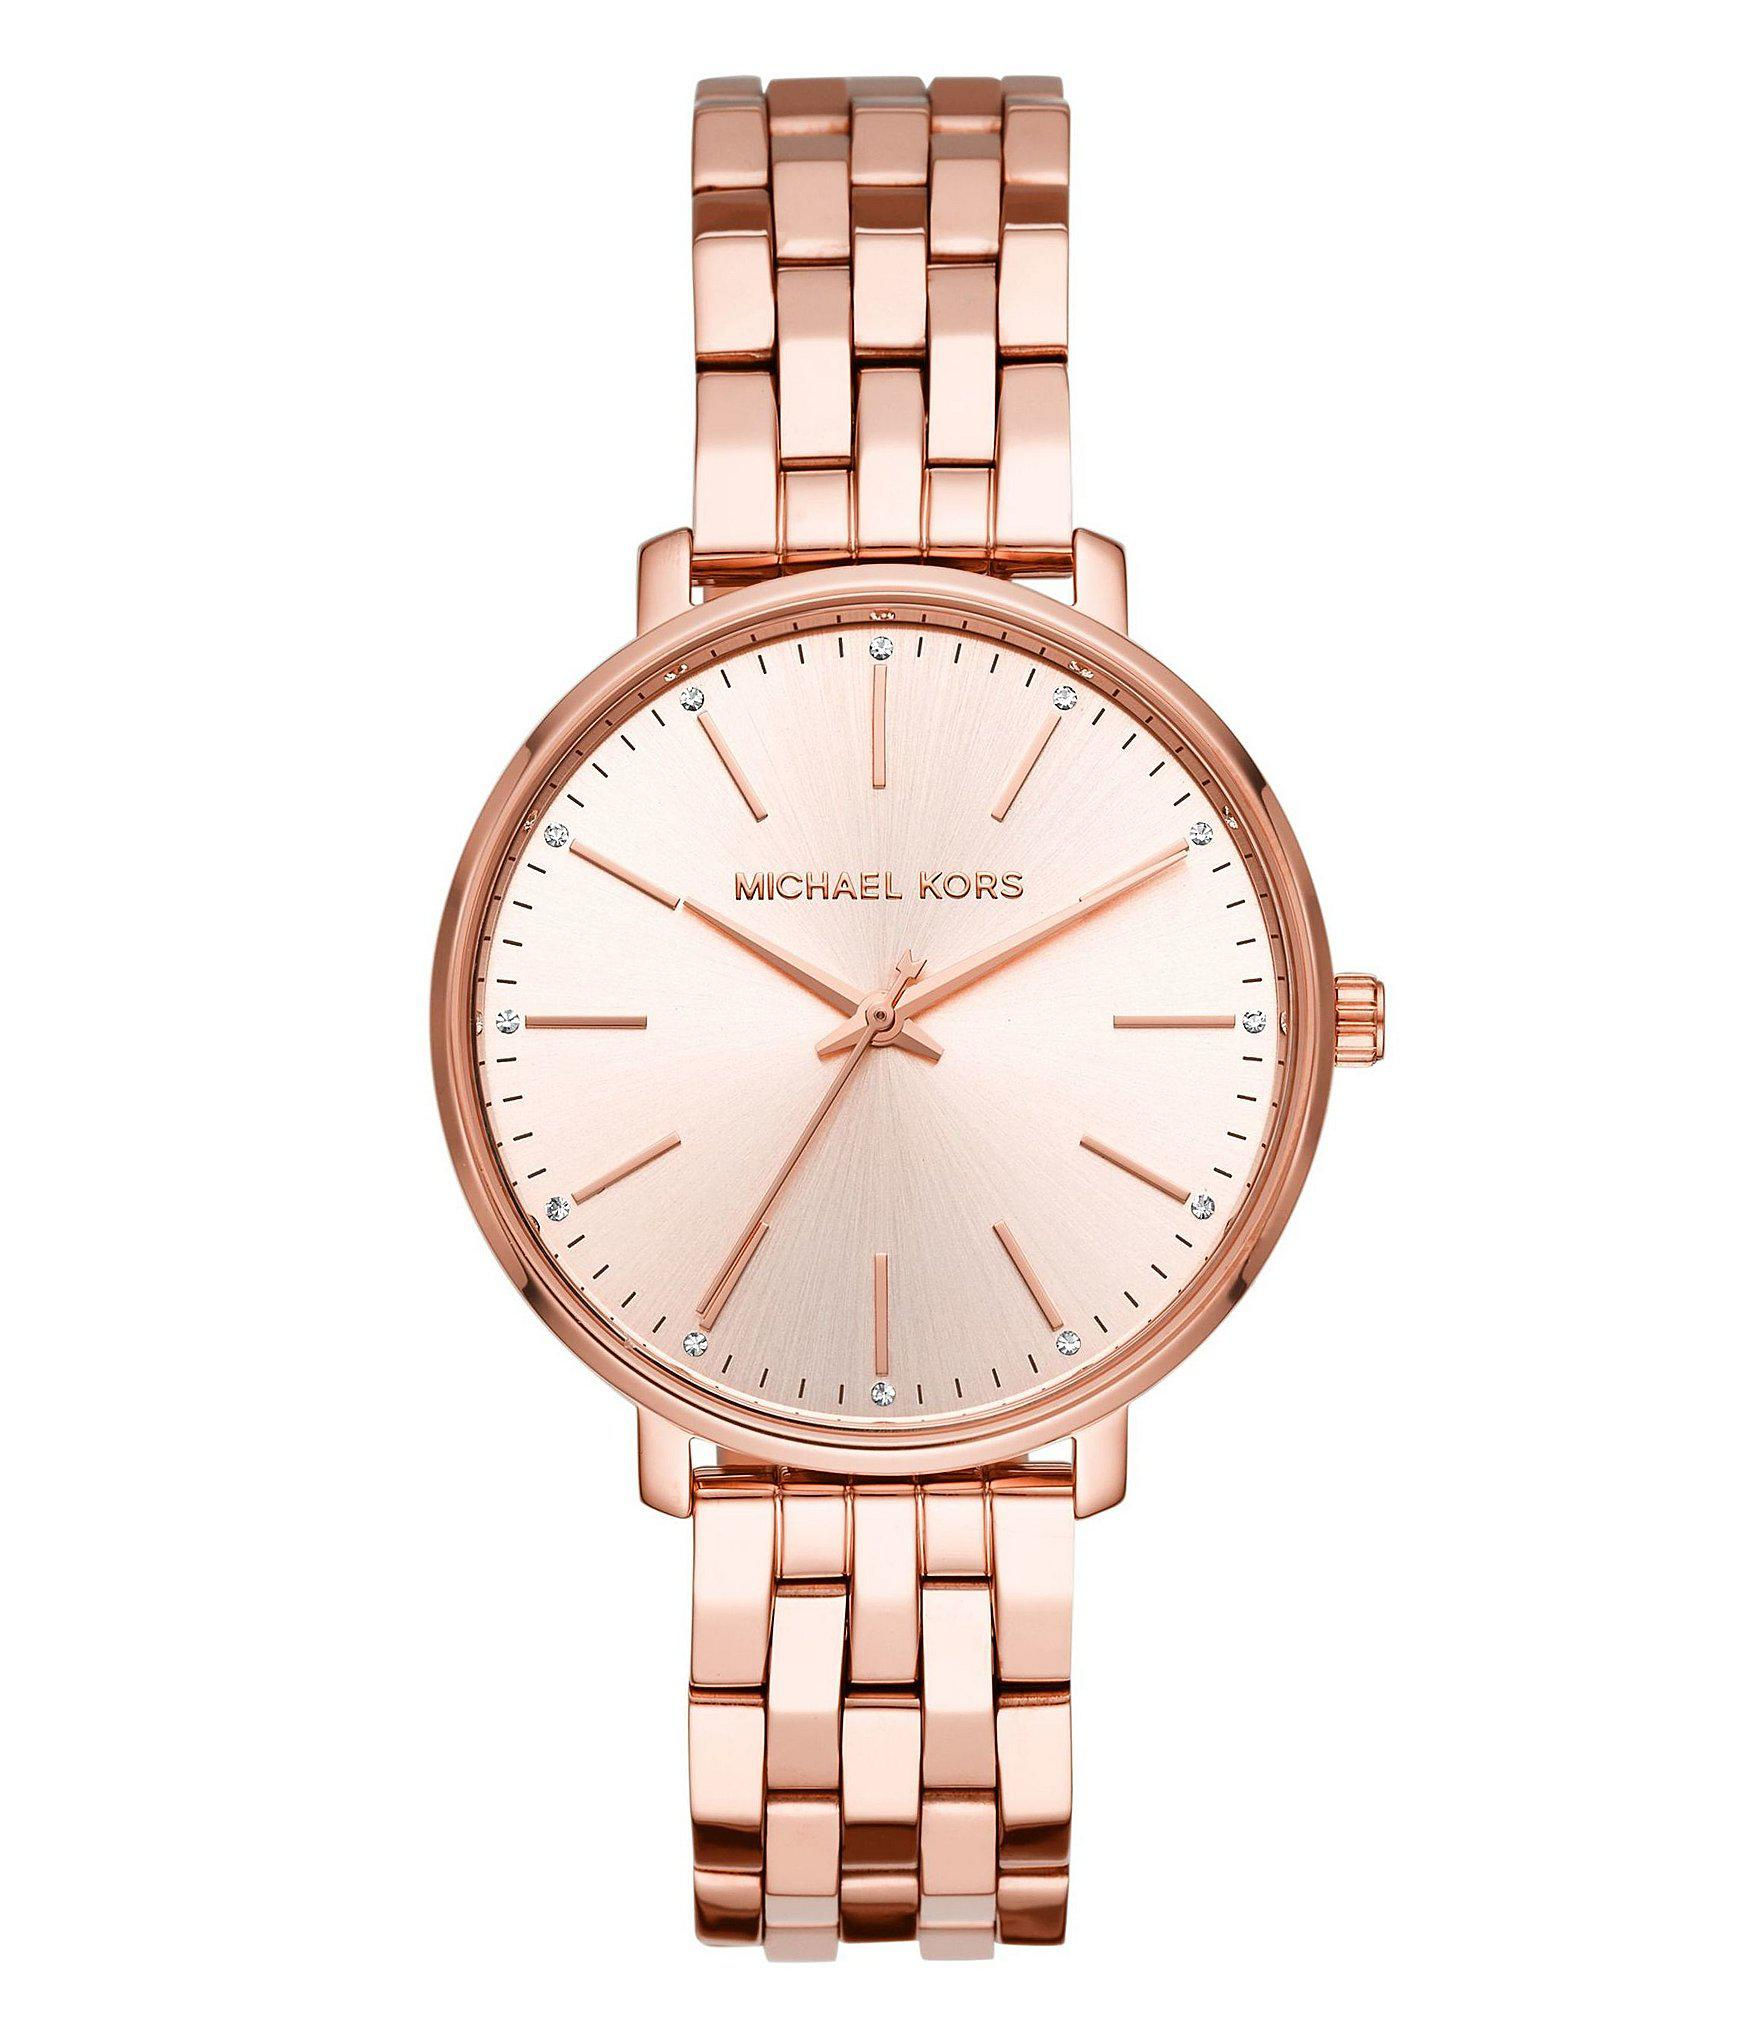 5c22fcded13e Michael Kors - Metallic Women s Norie Three-hand Red Coated Stainless Steel  Watch - Lyst. View fullscreen